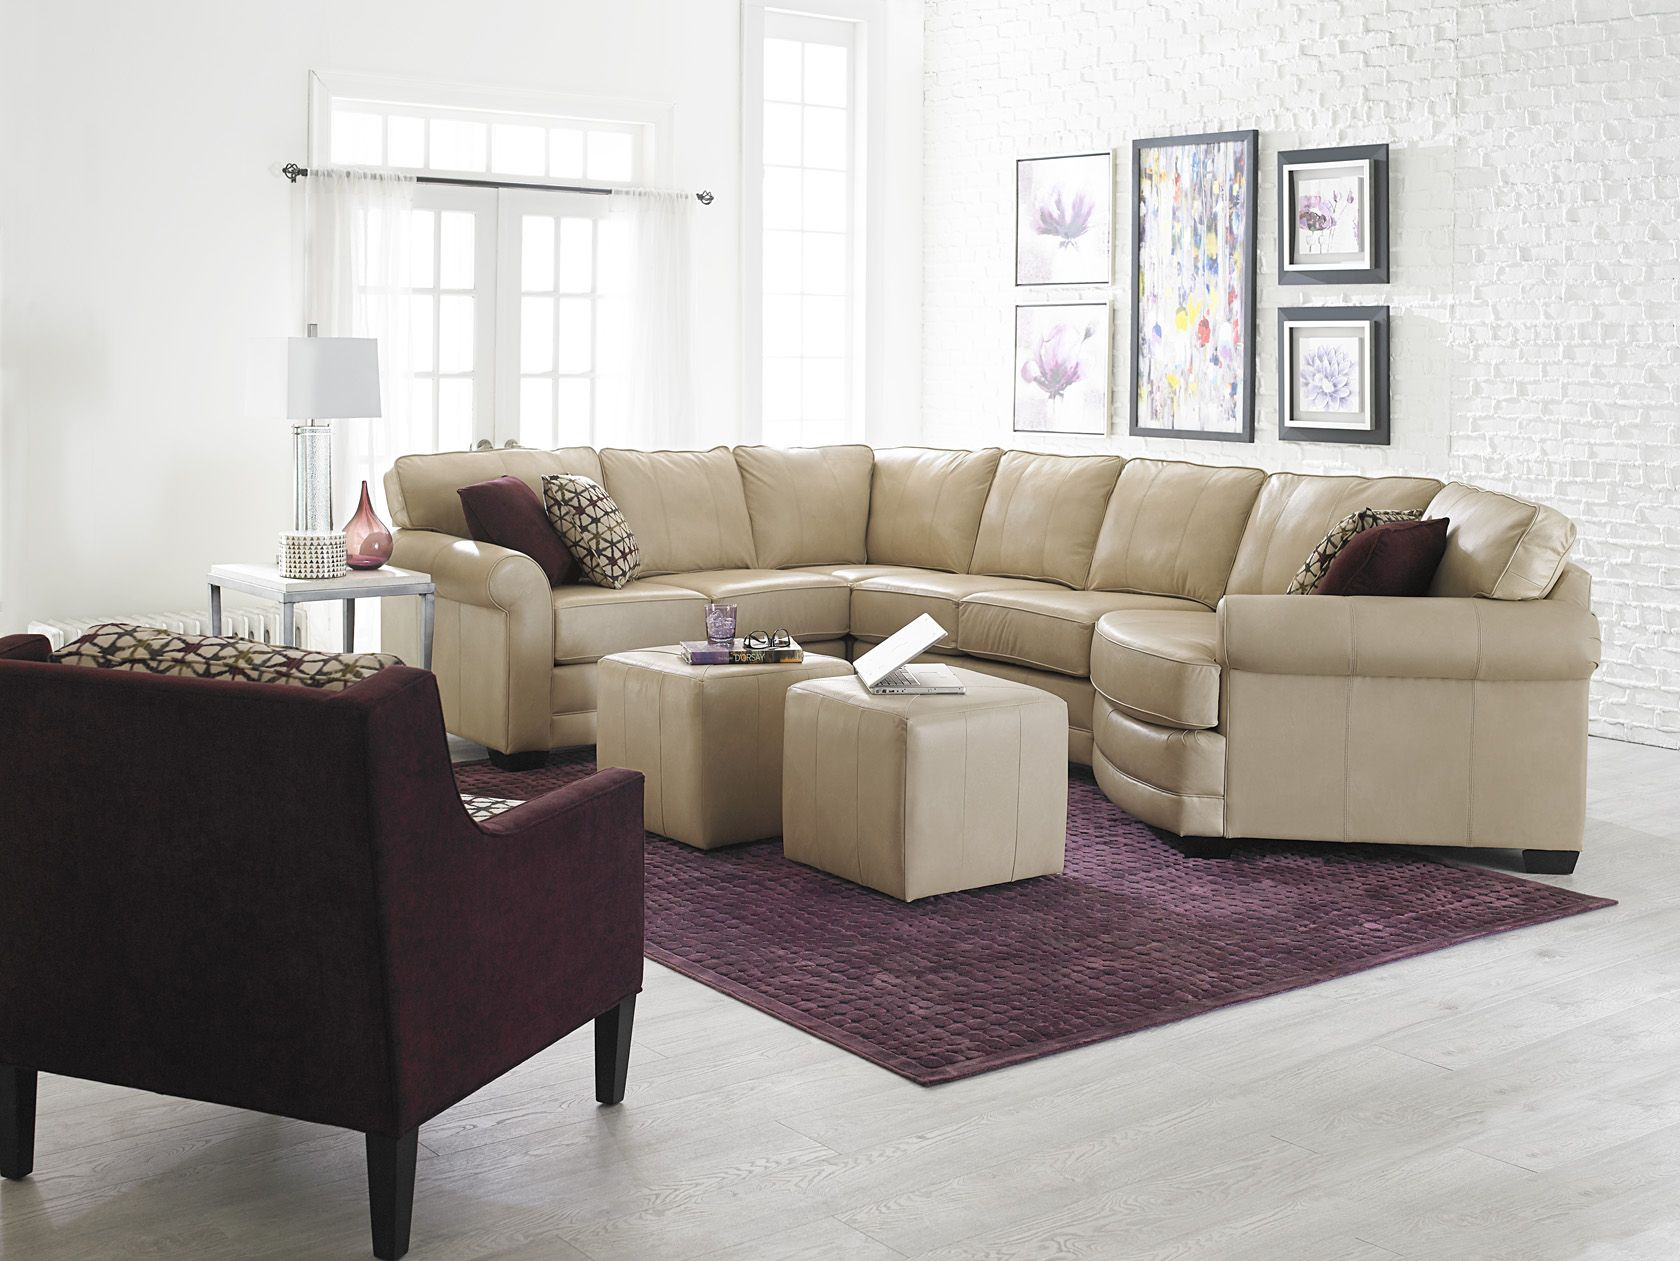 England Furniture Leather Sectional With Cuddler Seat The Cream And Plum Colour Scheme Offers A Fresh New Look